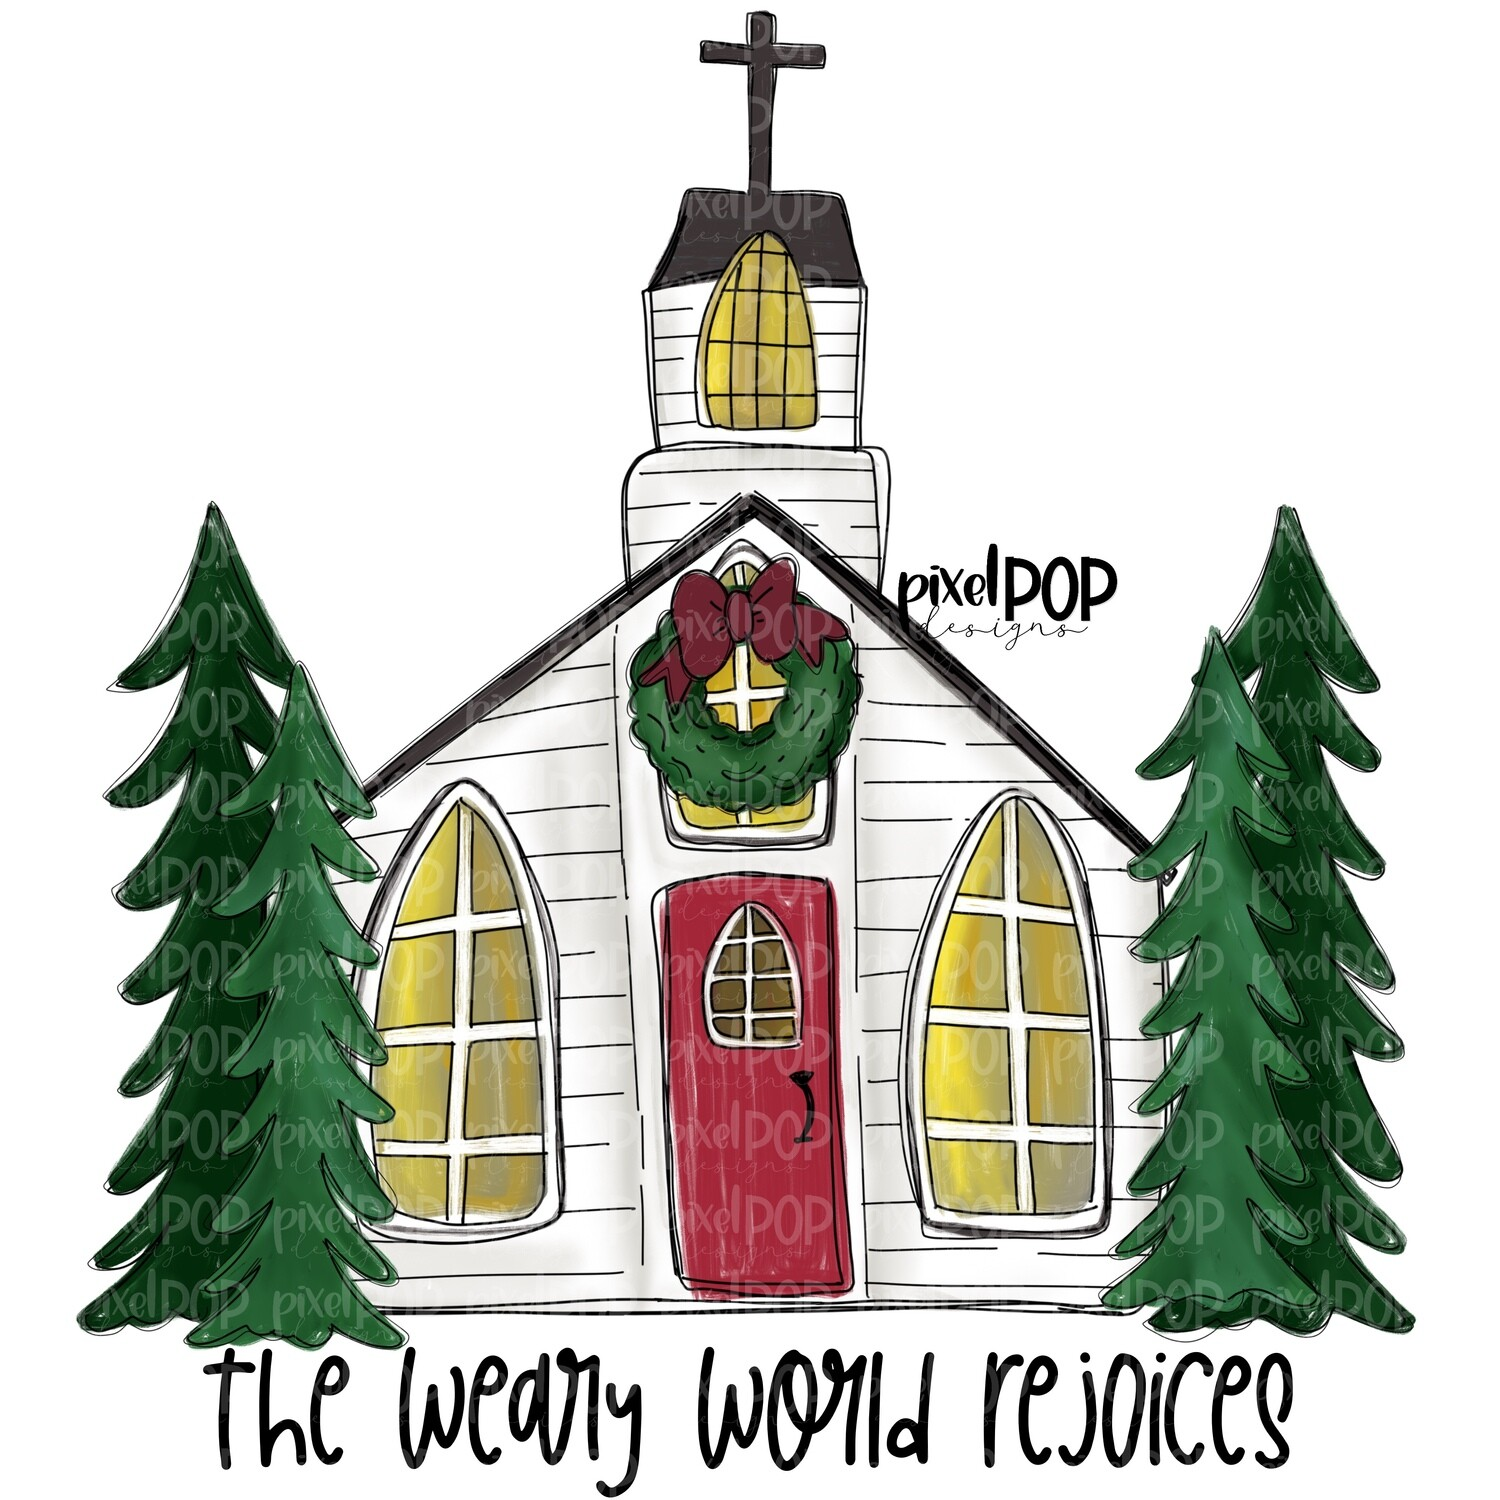 The Weary World Rejoices Church PNG   Christmas Design   Church Art   Sublimation PNG   Digital Download   Printable Artwork   Christmas Art